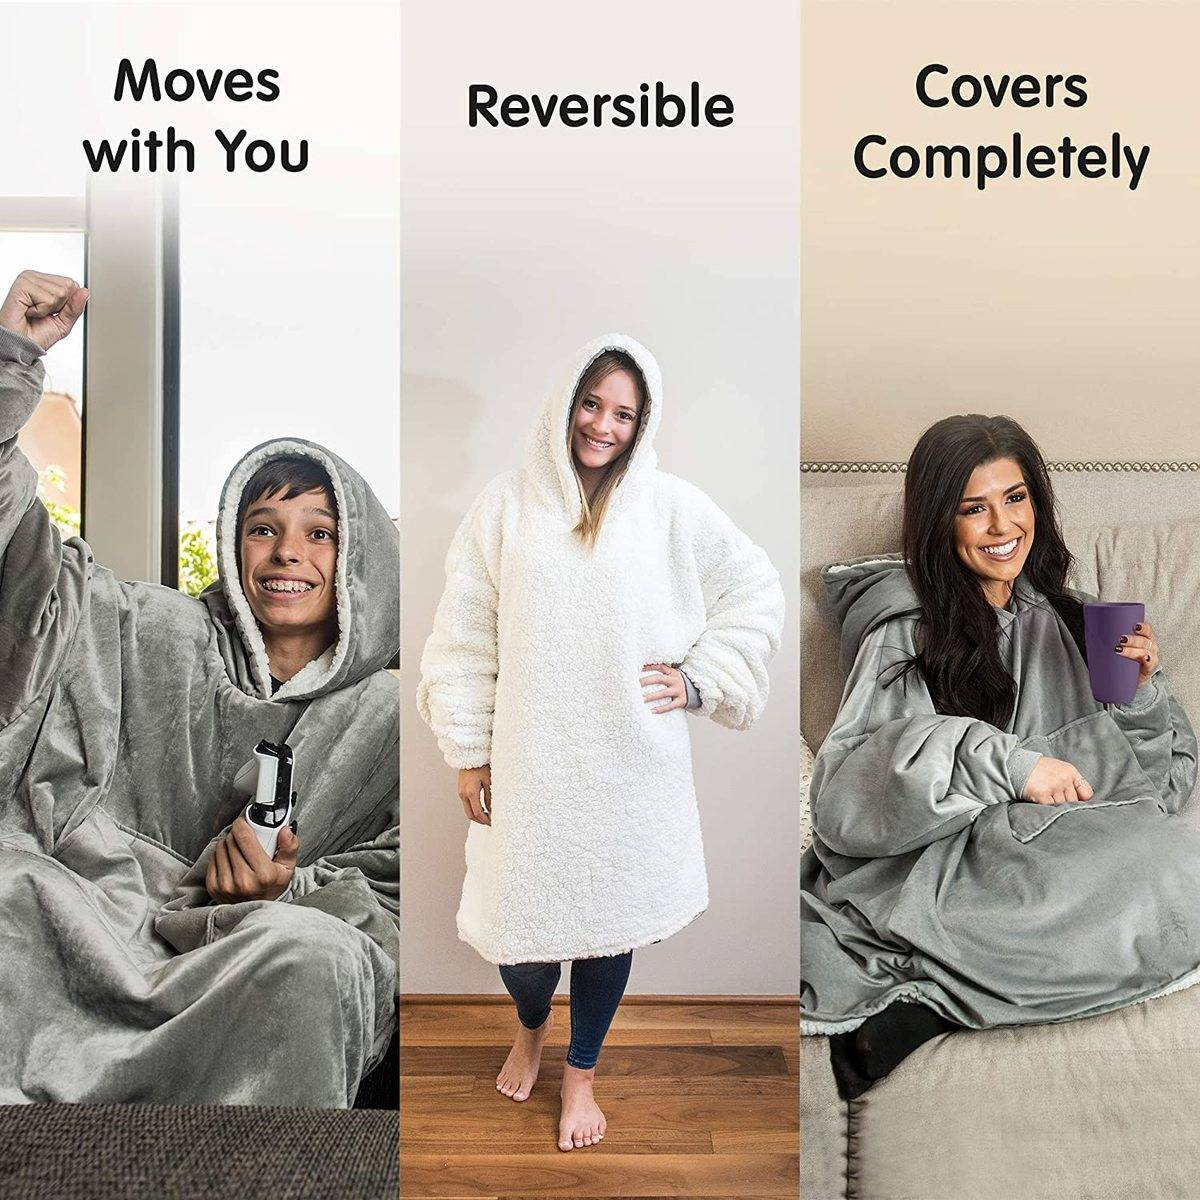 The Comfy Store's wearable sherpa blanket ad photo